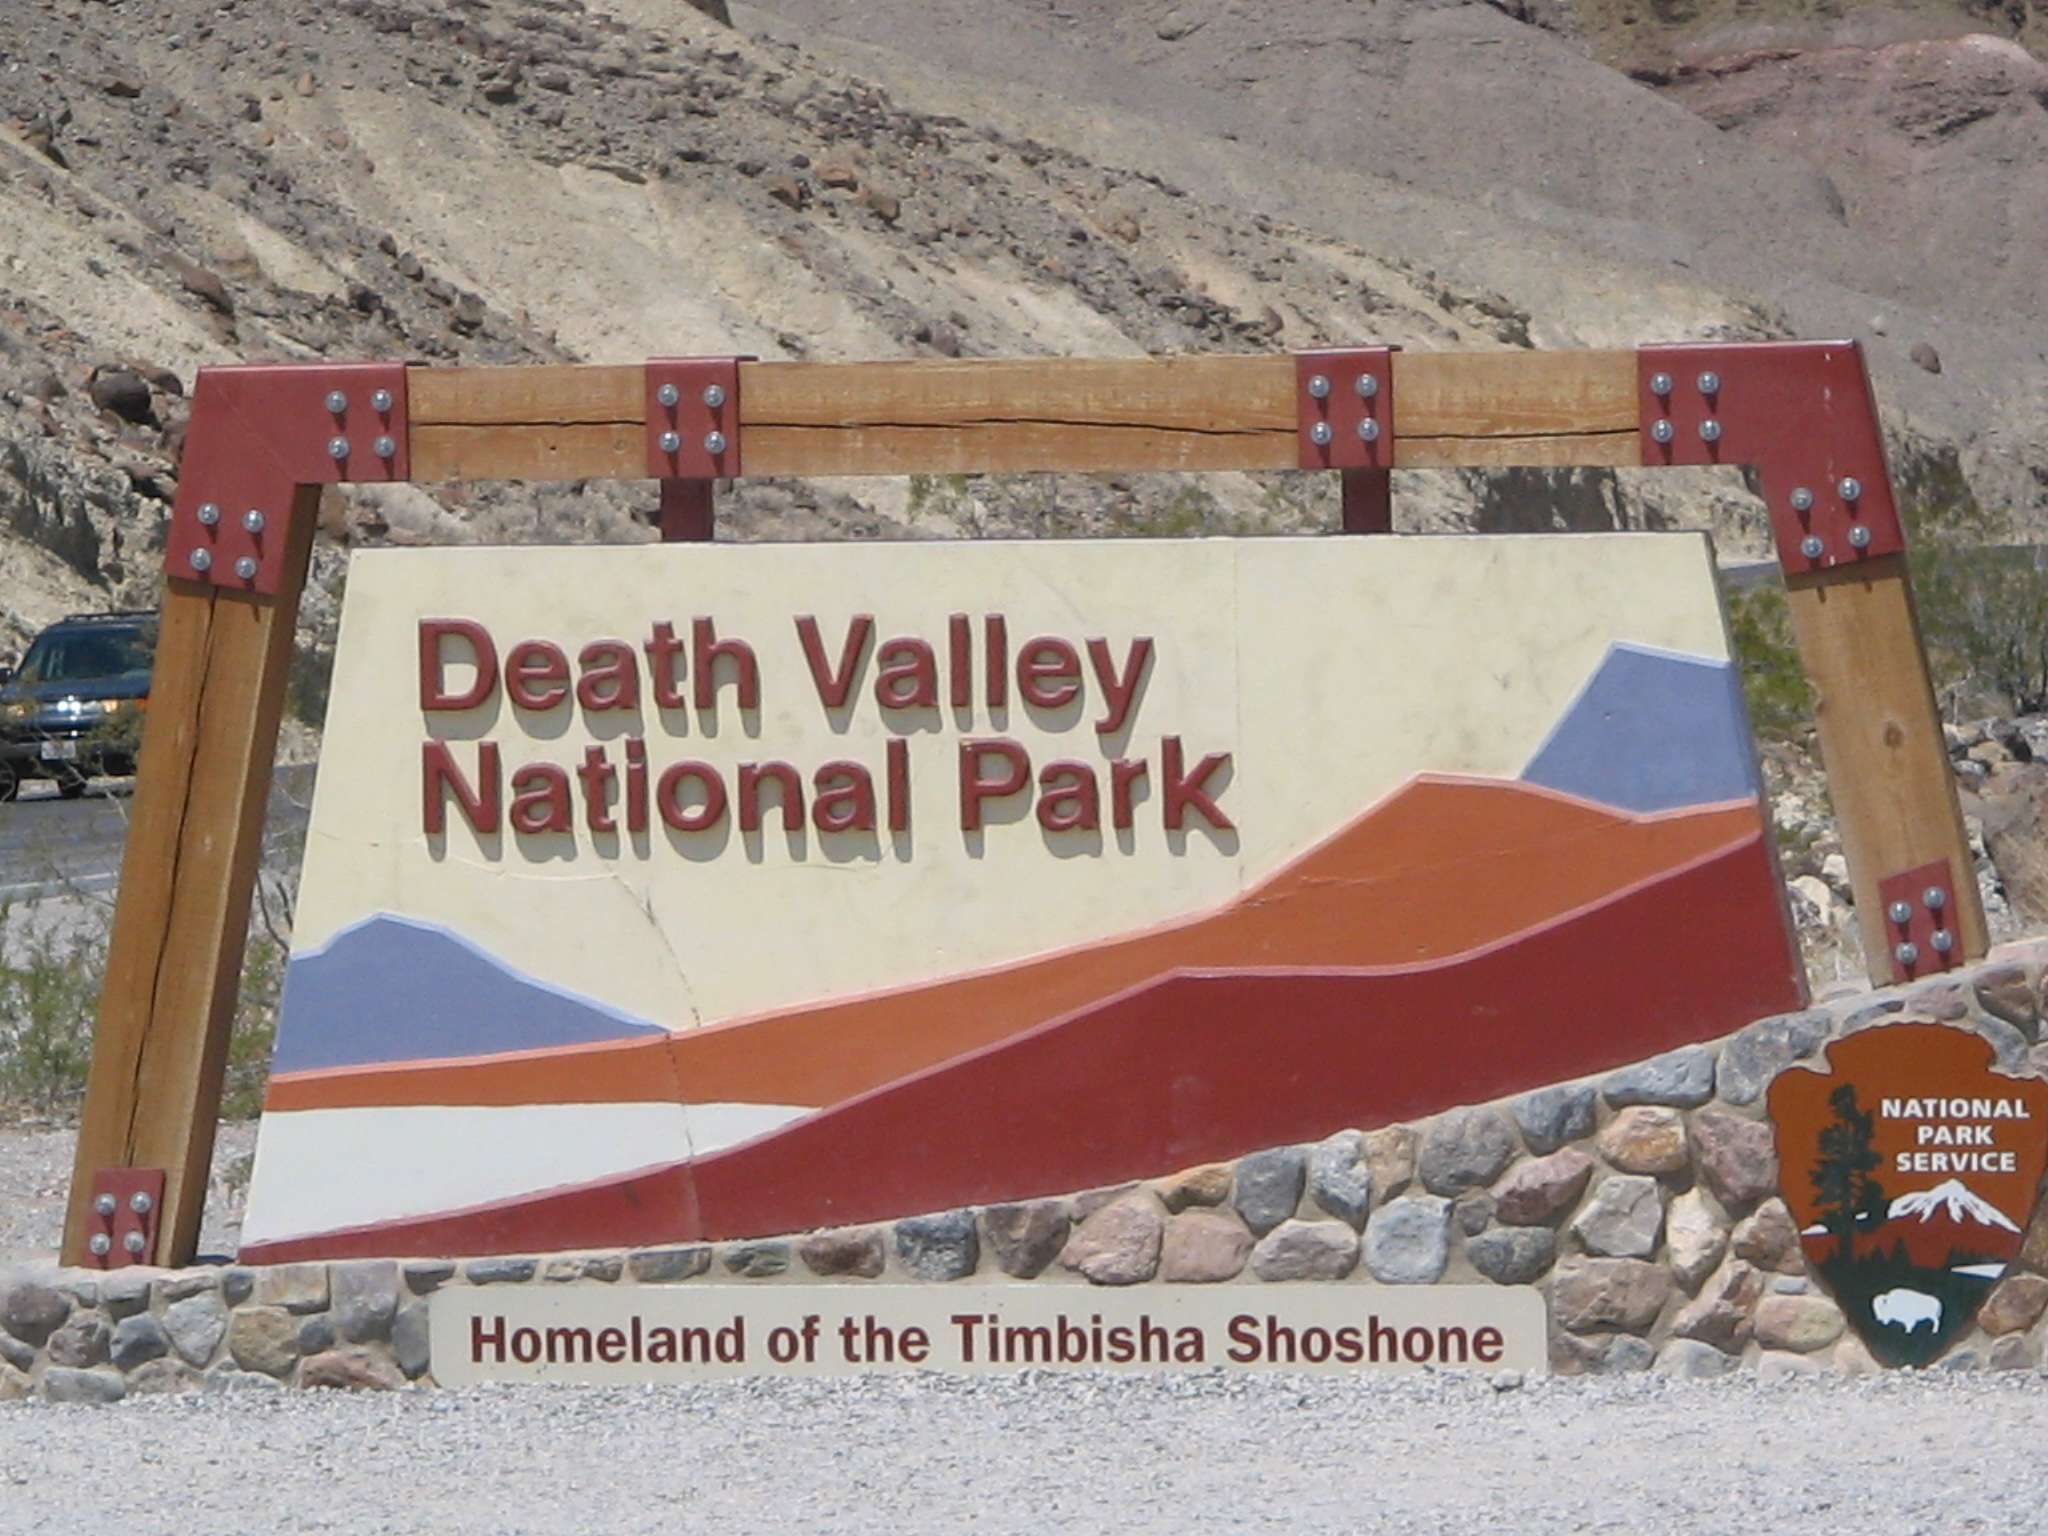 Death_Valley_National_Park_Entrance_California_State_Route_190.JPG